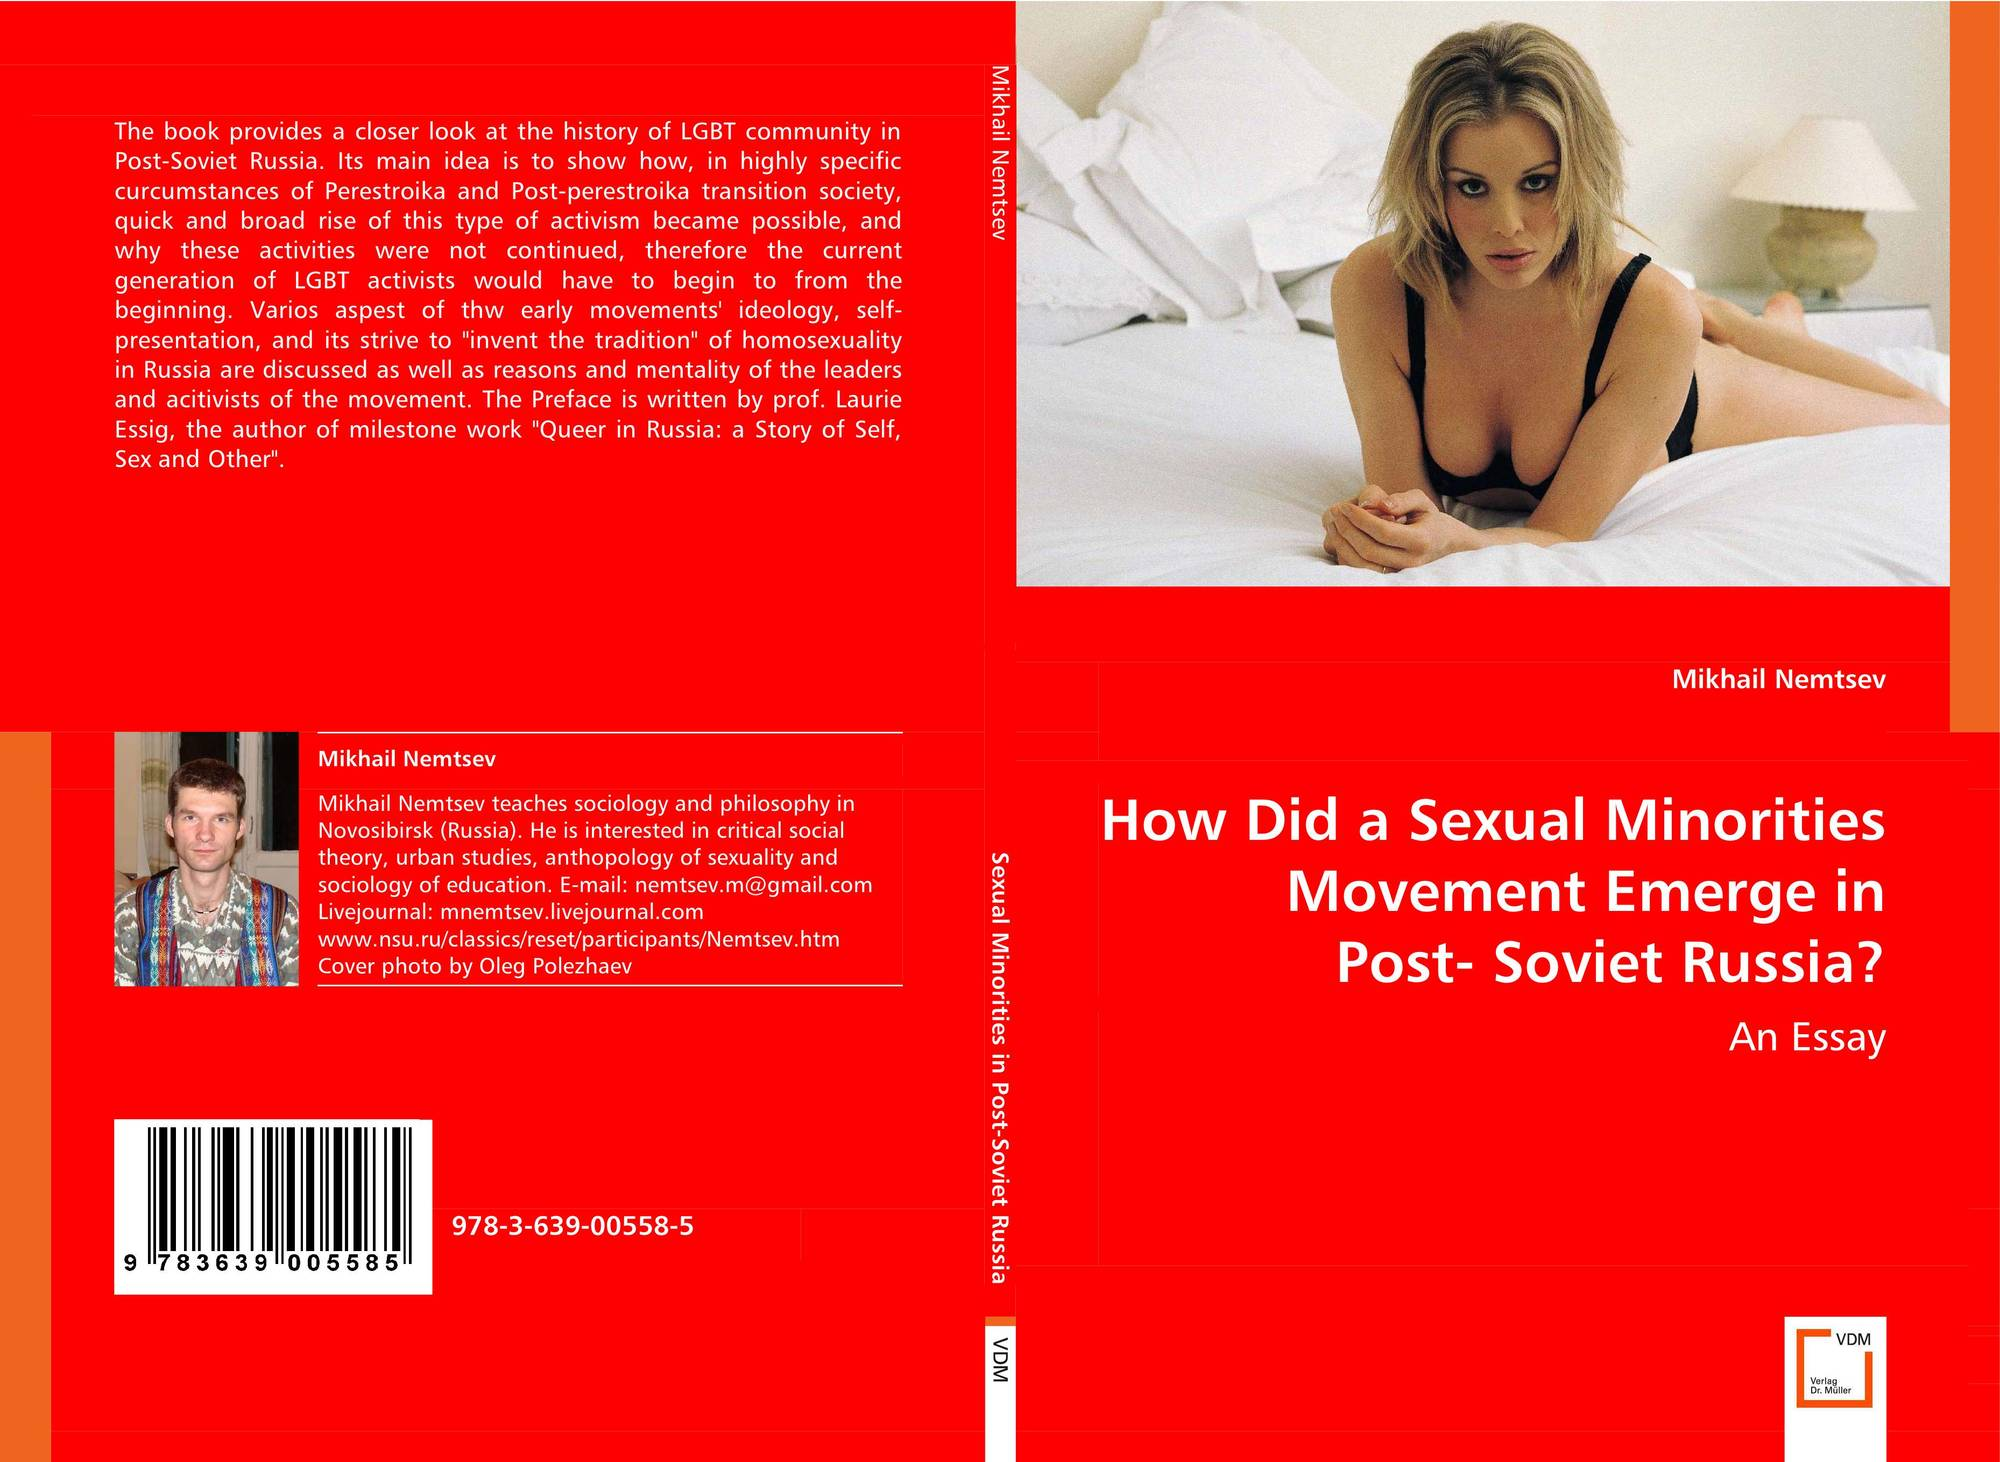 resultados de la b uacute squeda por essay portada del libro de how did a sexual minorities movement emerge in post soviet russia